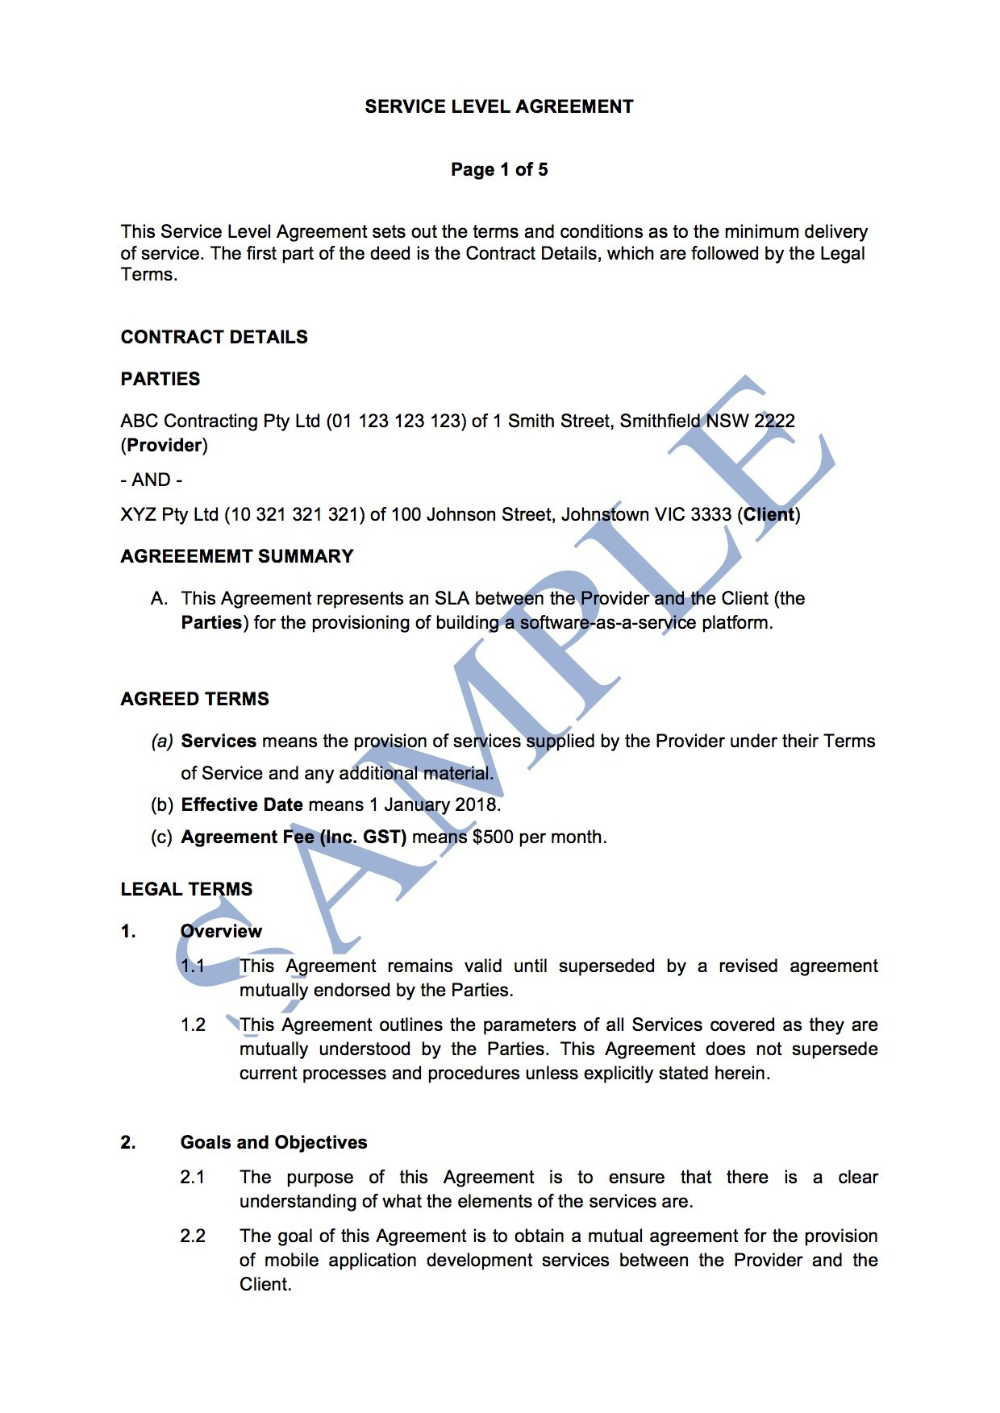 Service Level Agreement Free Template Sample Lawpath With Standard Service Level Agreement Template 10 Professional In 2020 Service Level Agreement Agreement Levels